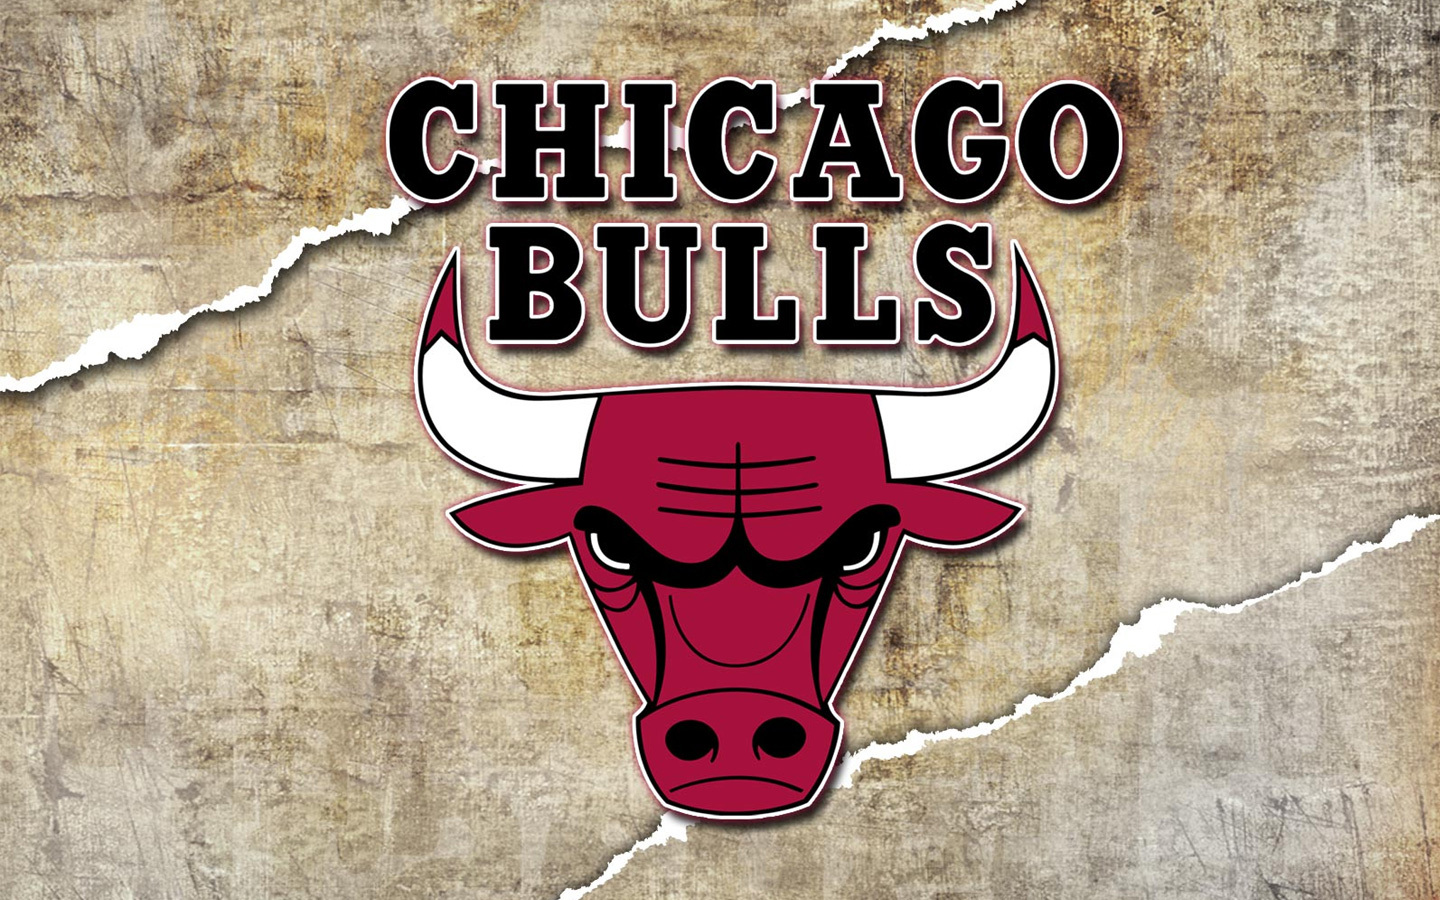 Chicago Bull Wallpaper For IPhone Wallpaper WallpaperLepi 1440x900